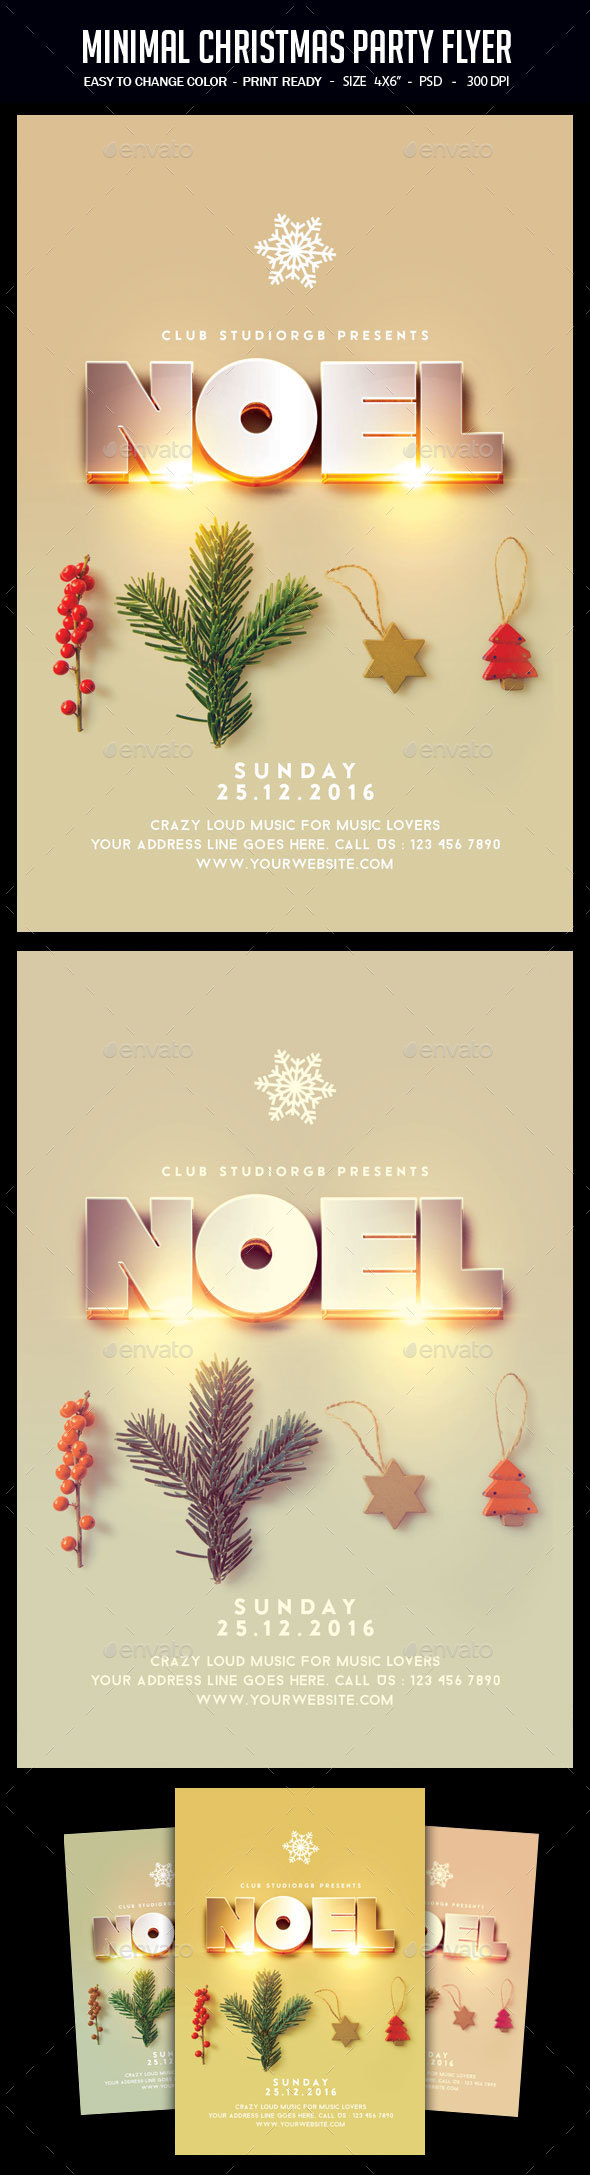 Minimal Christmas Party Flyer